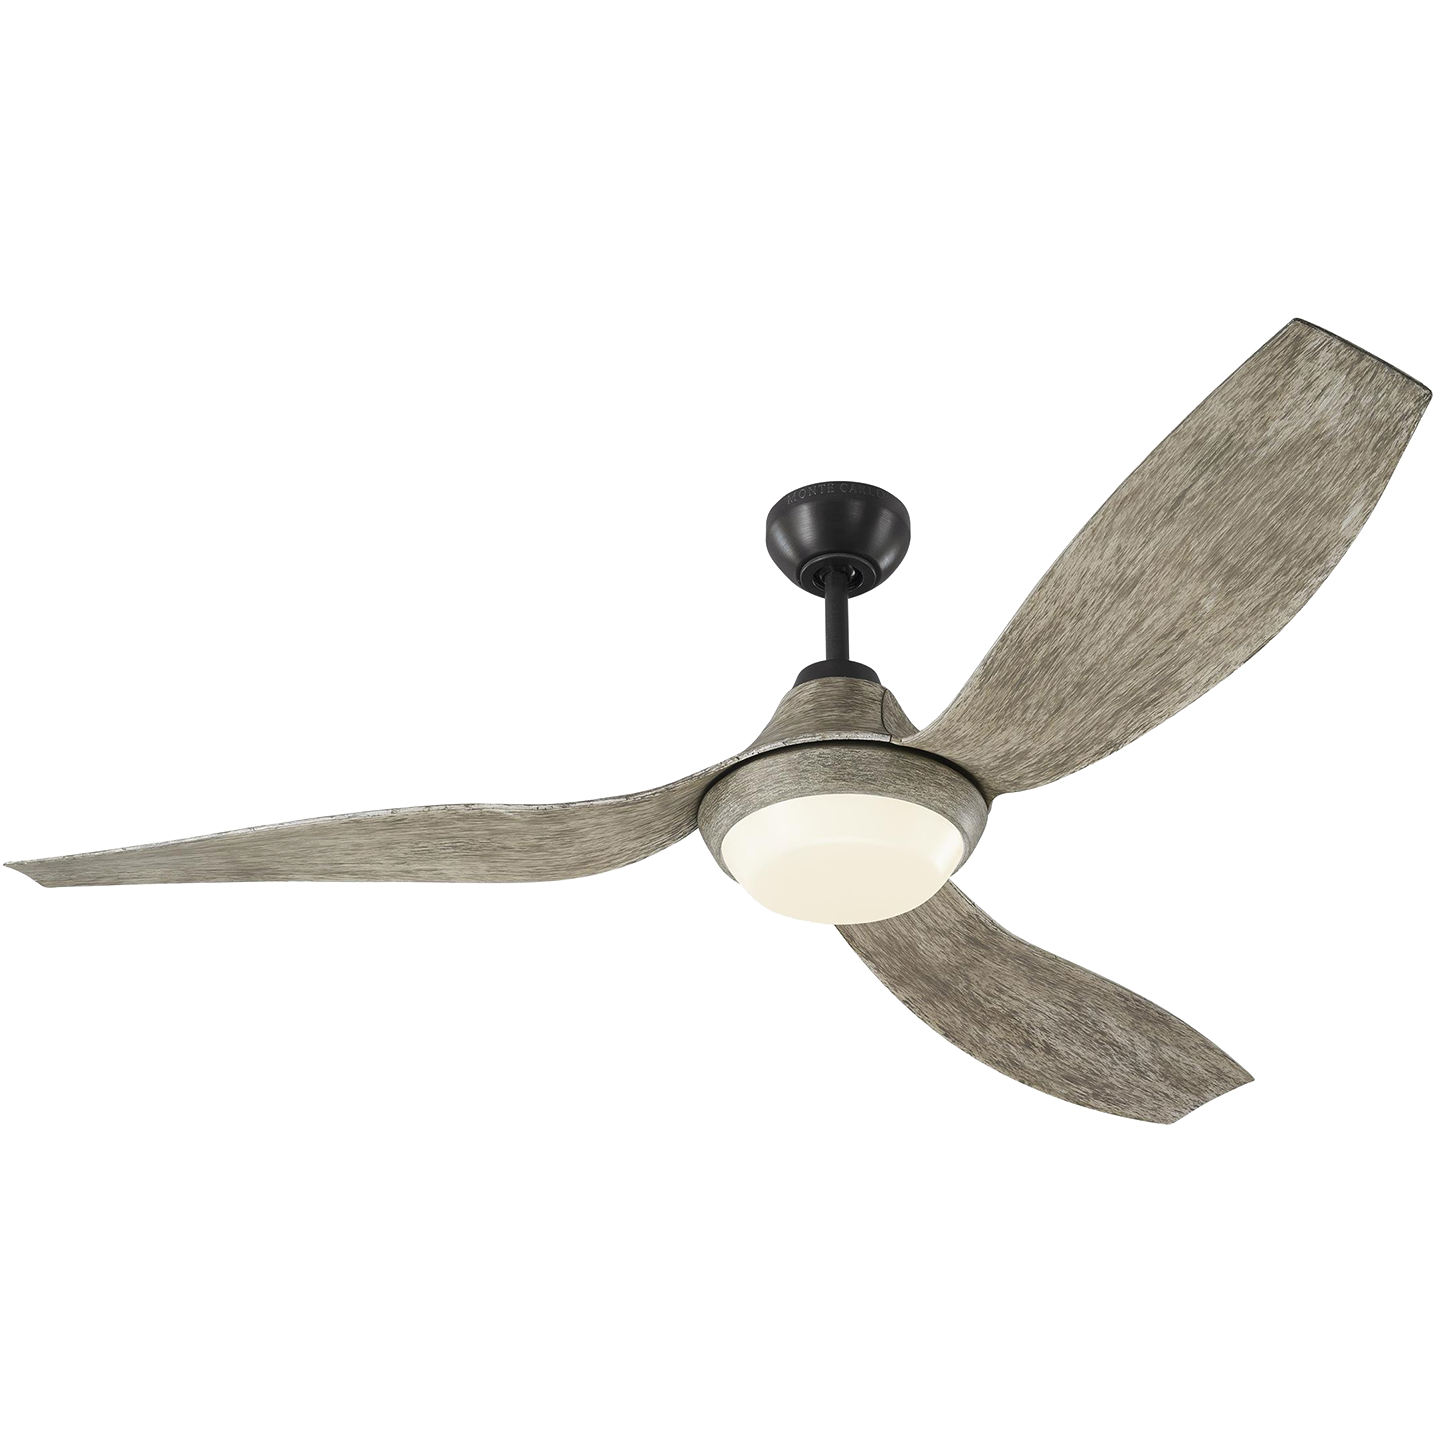 56 Avvo Ceiling Fan Ceiling Fan Ceiling Fan With Remote